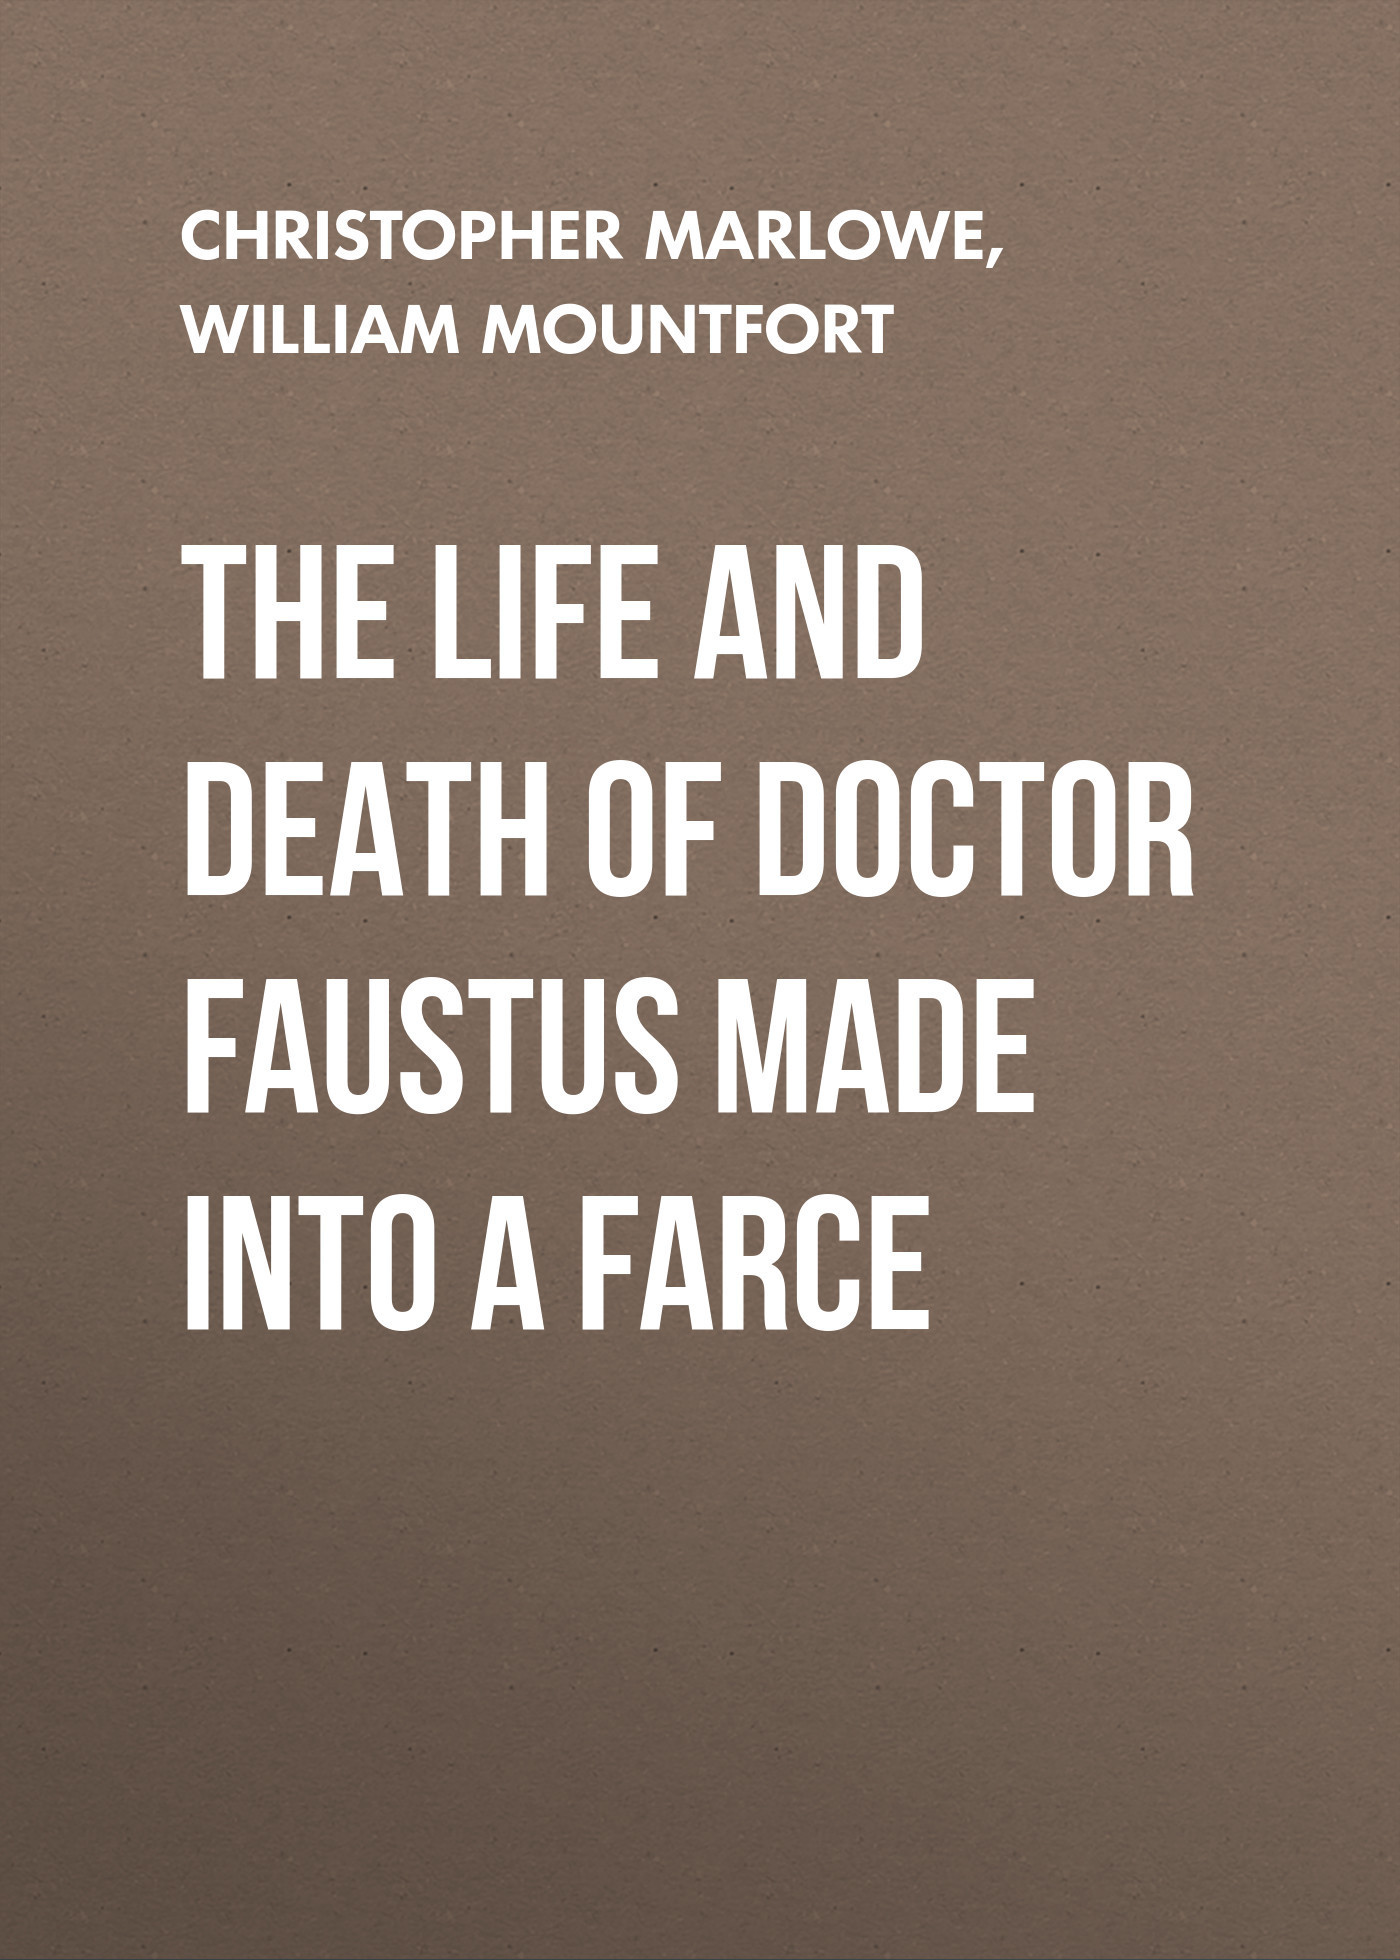 Christopher Marlowe The Life and Death of Doctor Faustus Made into a Farce cd iron maiden a matter of life and death